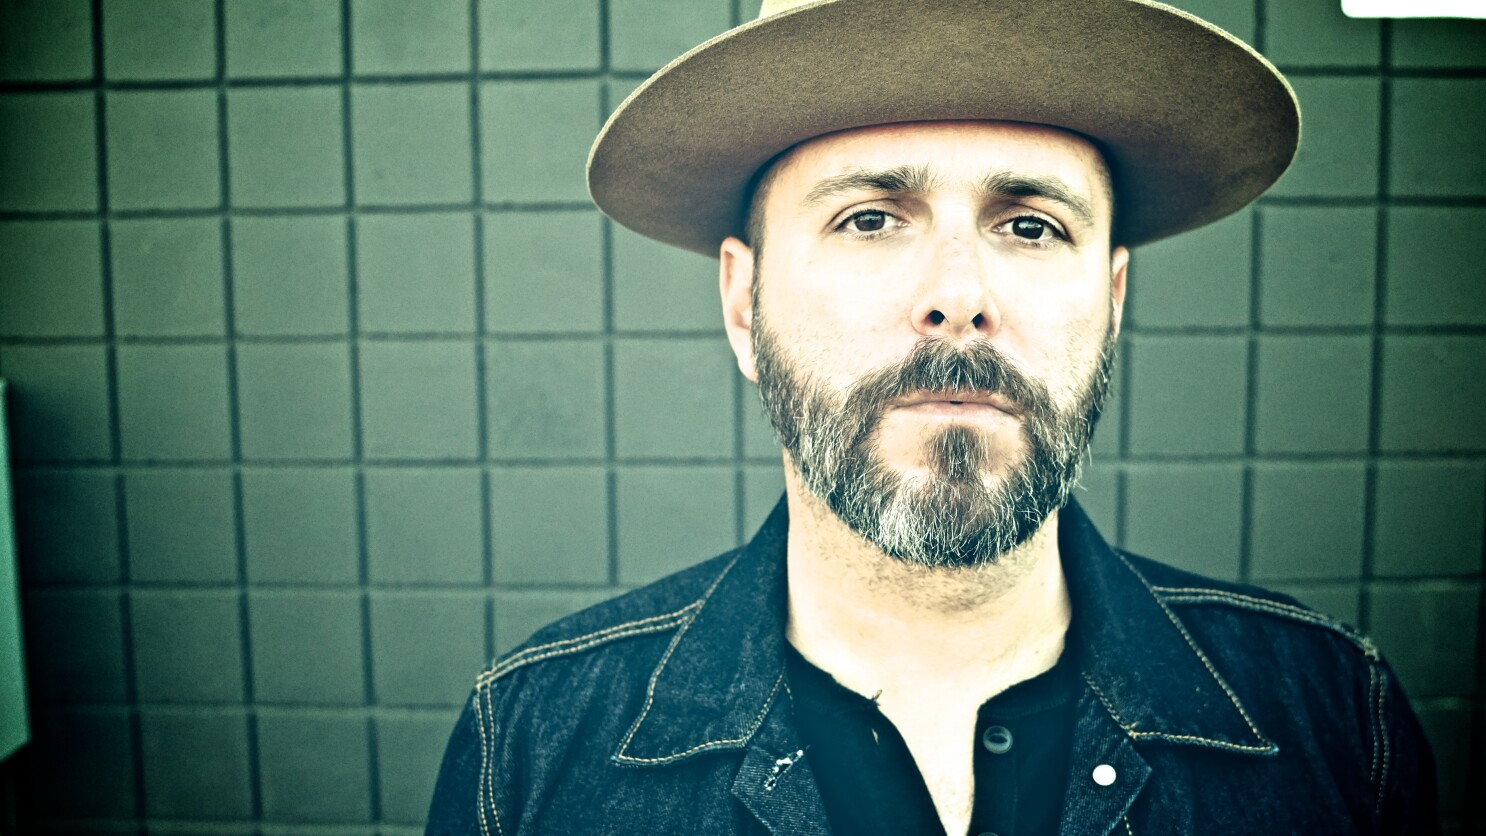 Greg Laswell on how his San Diego days paved his path